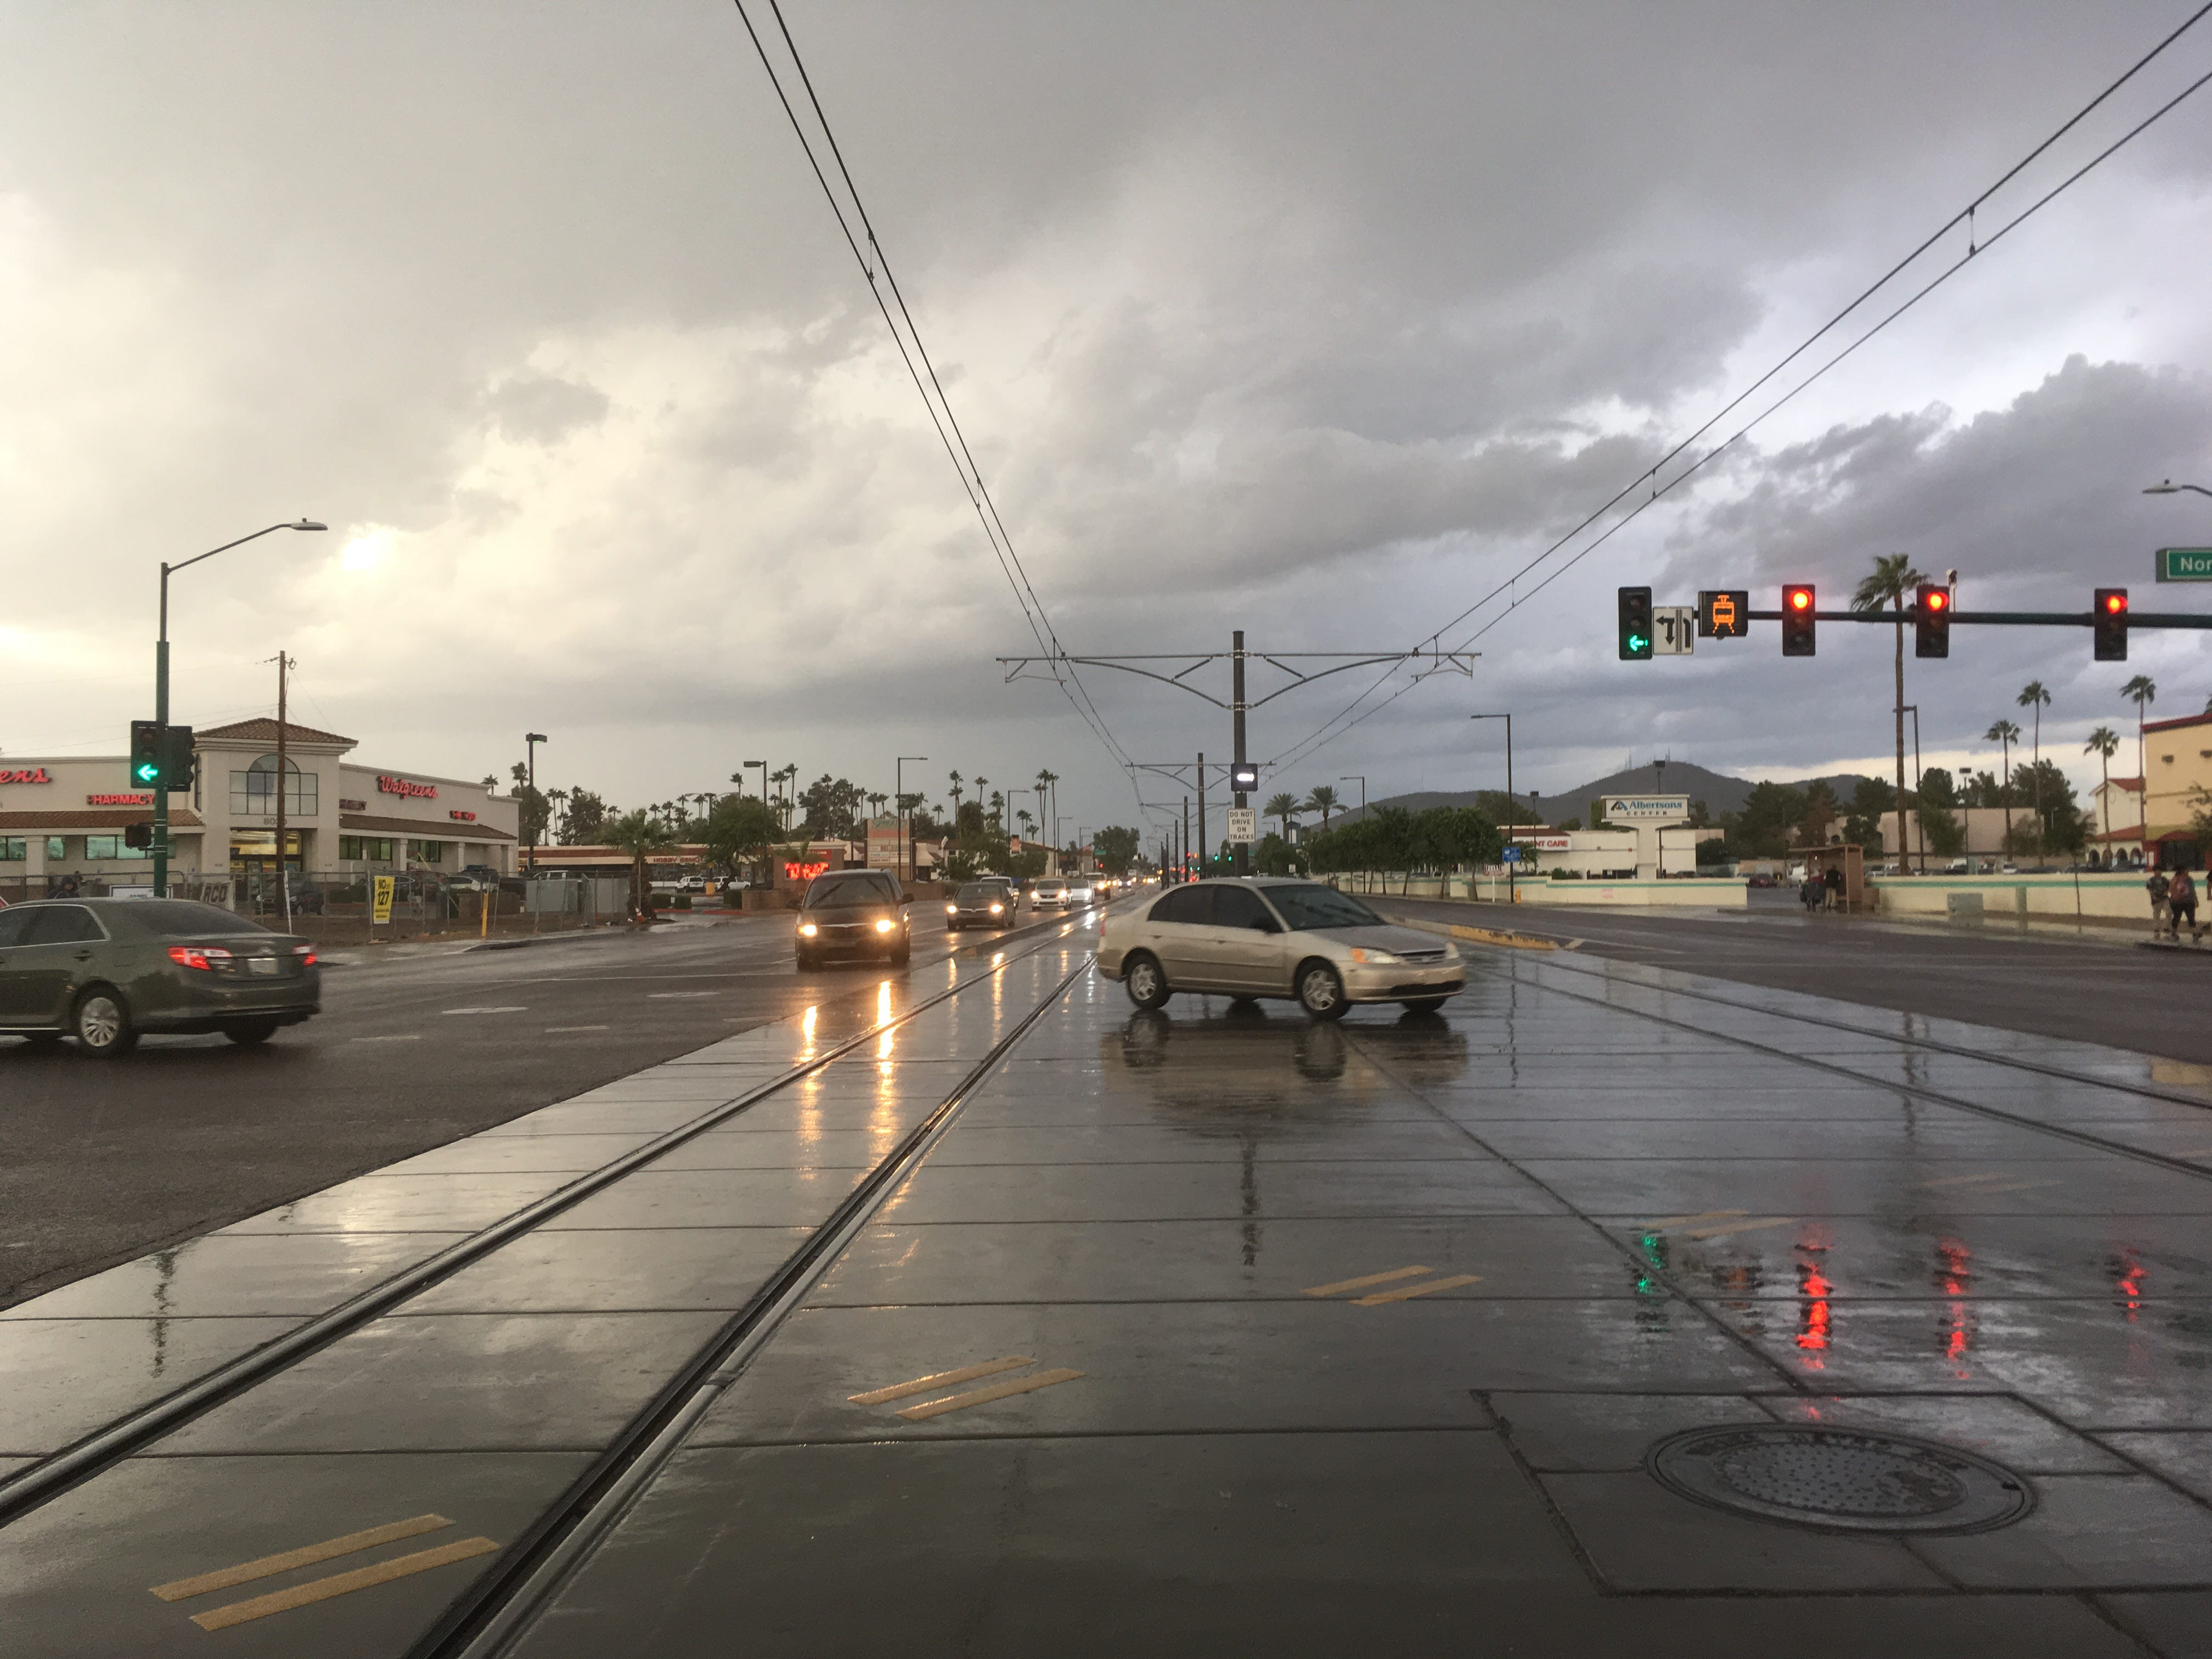 Storms bring rain, hail to parts of Phoenix area